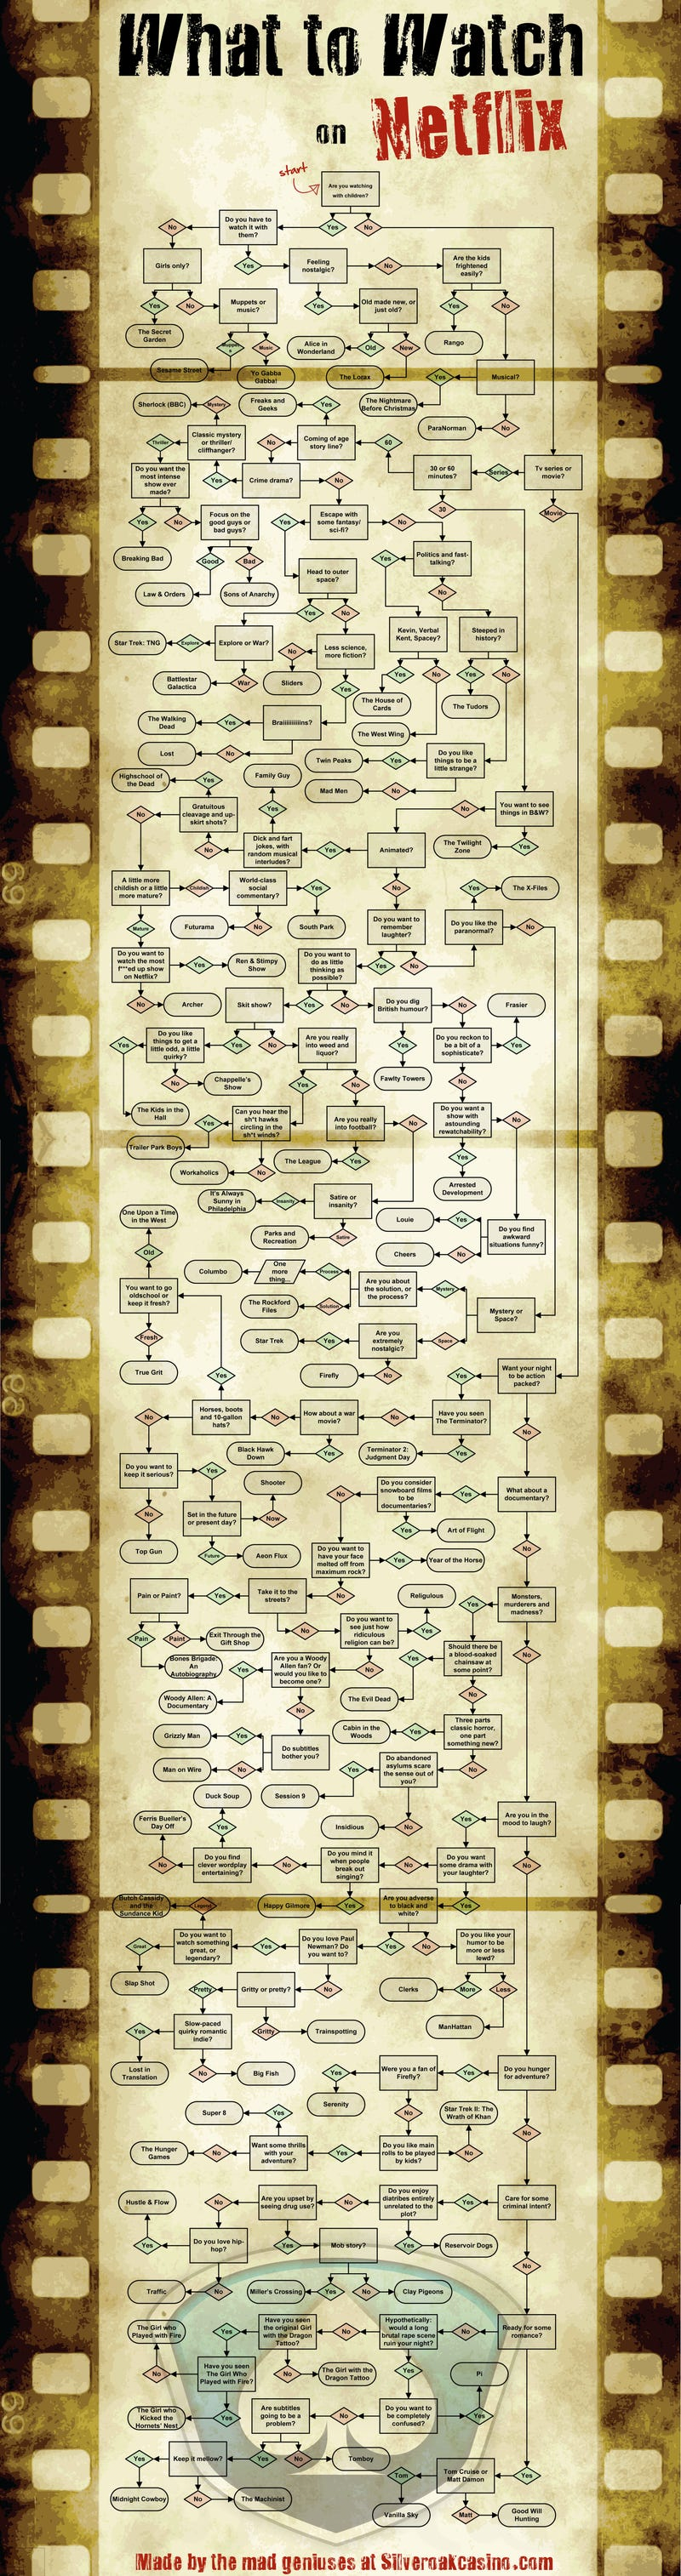 This Genius Netflix Flowchart Will Tell You Exactly What to